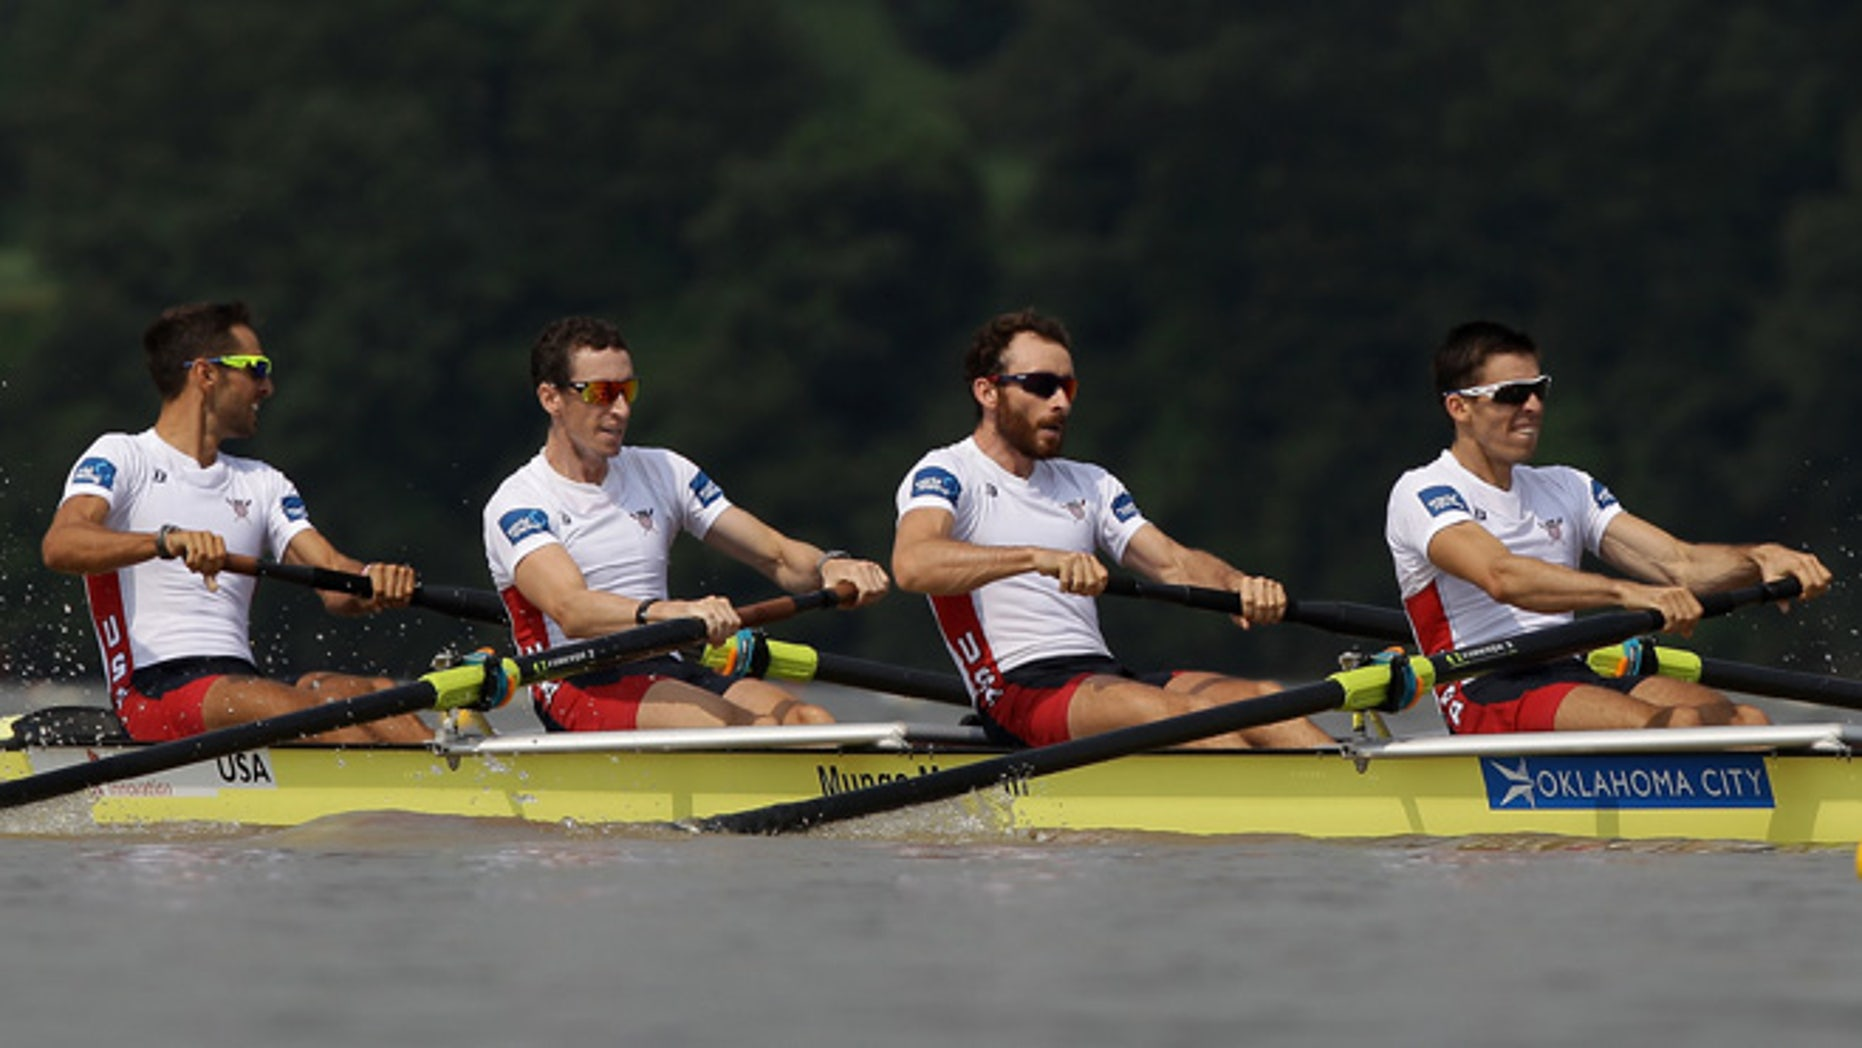 CHUNGJU, SOUTH KOREA - AUGUST 30:  Robert Duff, William Daly, Anthony Fahden and Robin Prendes of United States compete in the Lightweight Men's Four final during day six of the 2013 World Rowing Championships on August 30, 2013 in Chungju, South Korea.  (Photo by Chung Sung-Jun/Getty Images)